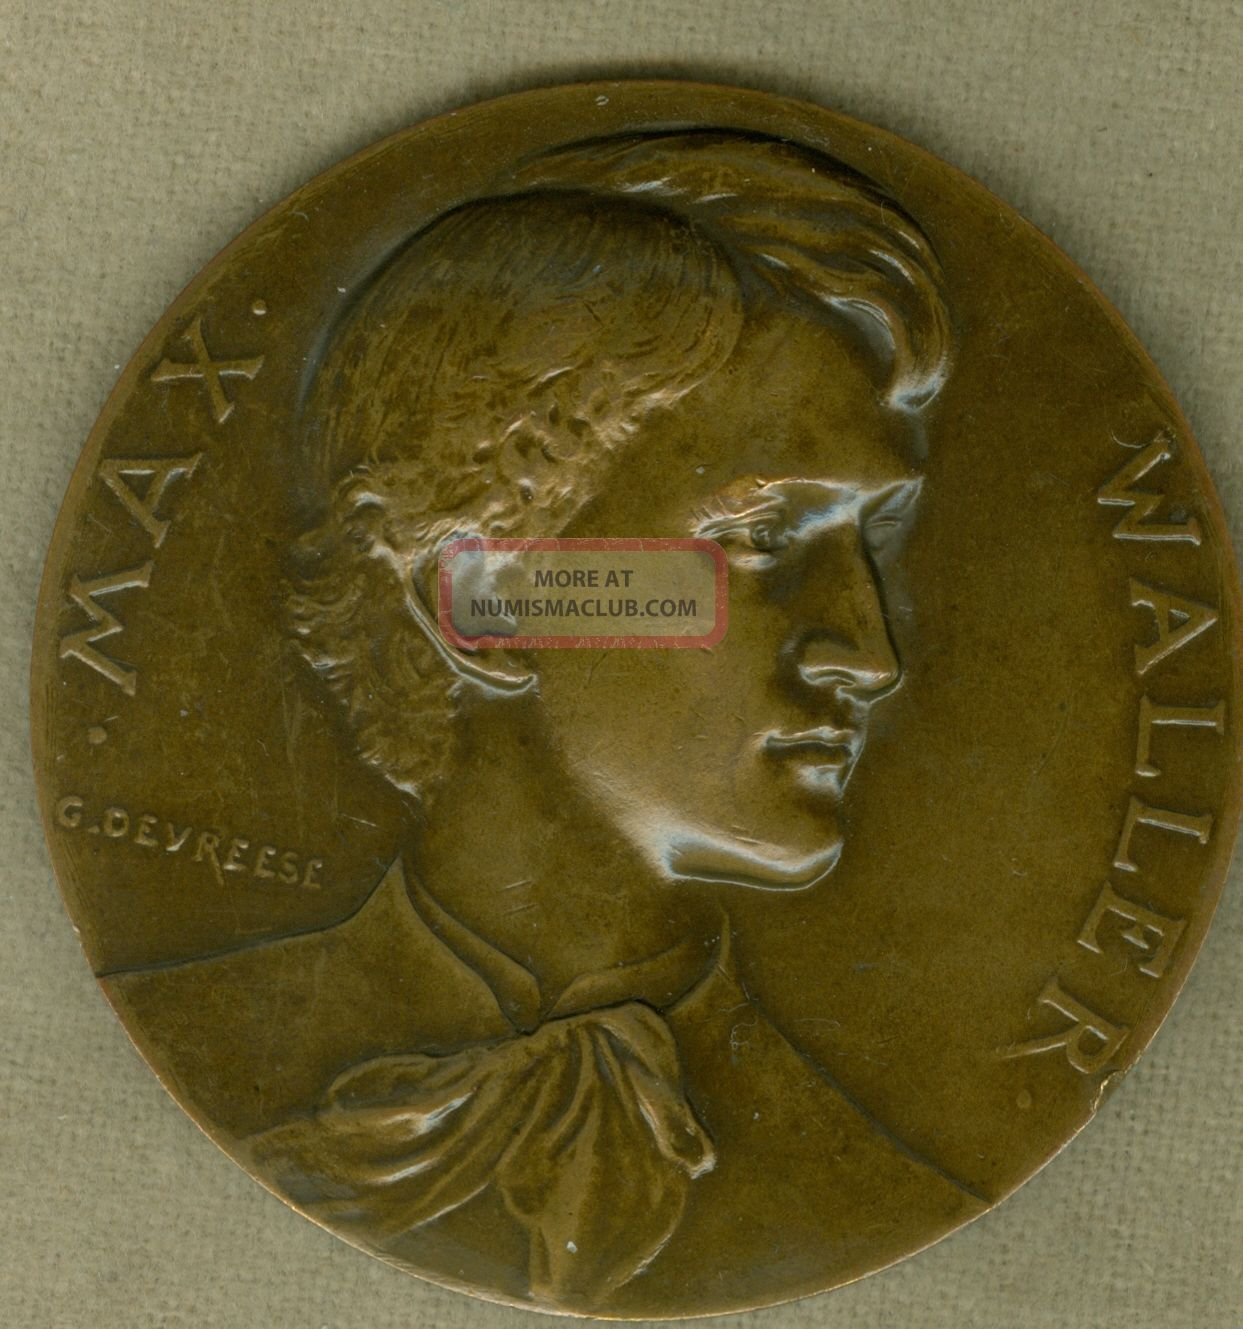 1889 Belgium Medal Issued In Honor Of The Poet Max Waller,  By Devreese Exonumia photo